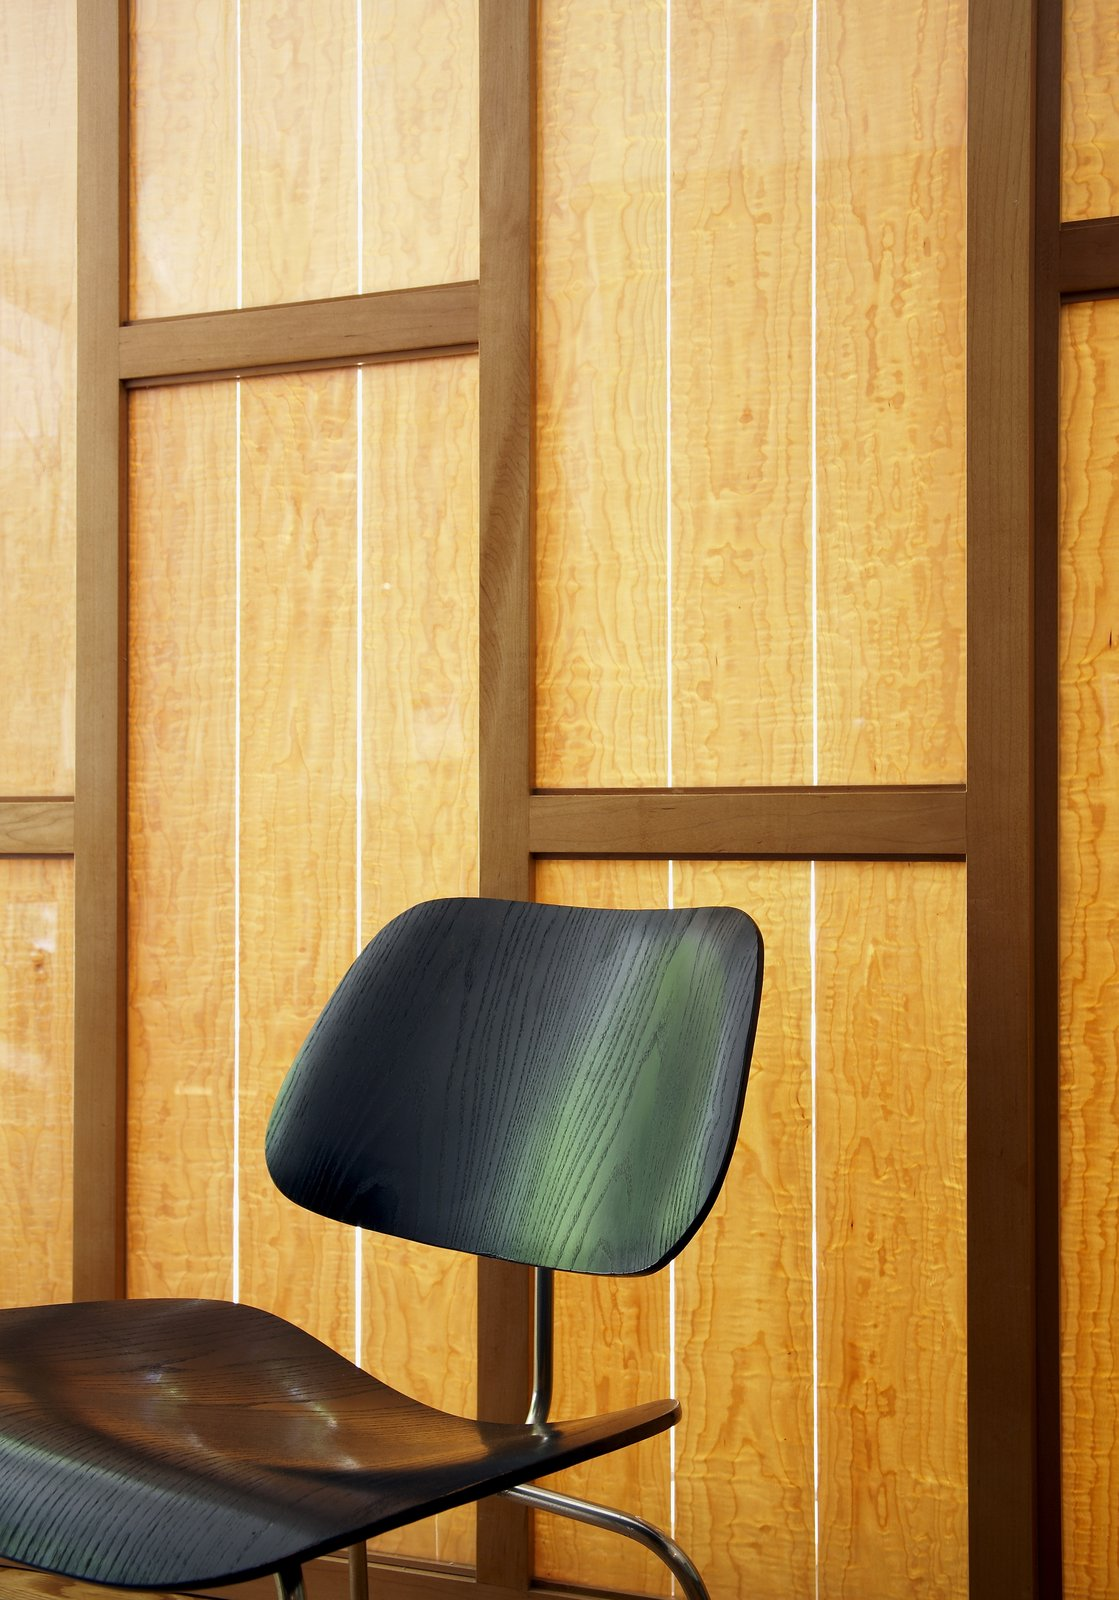 Eames' chair in front of our custom sunscreen with maple veneer.